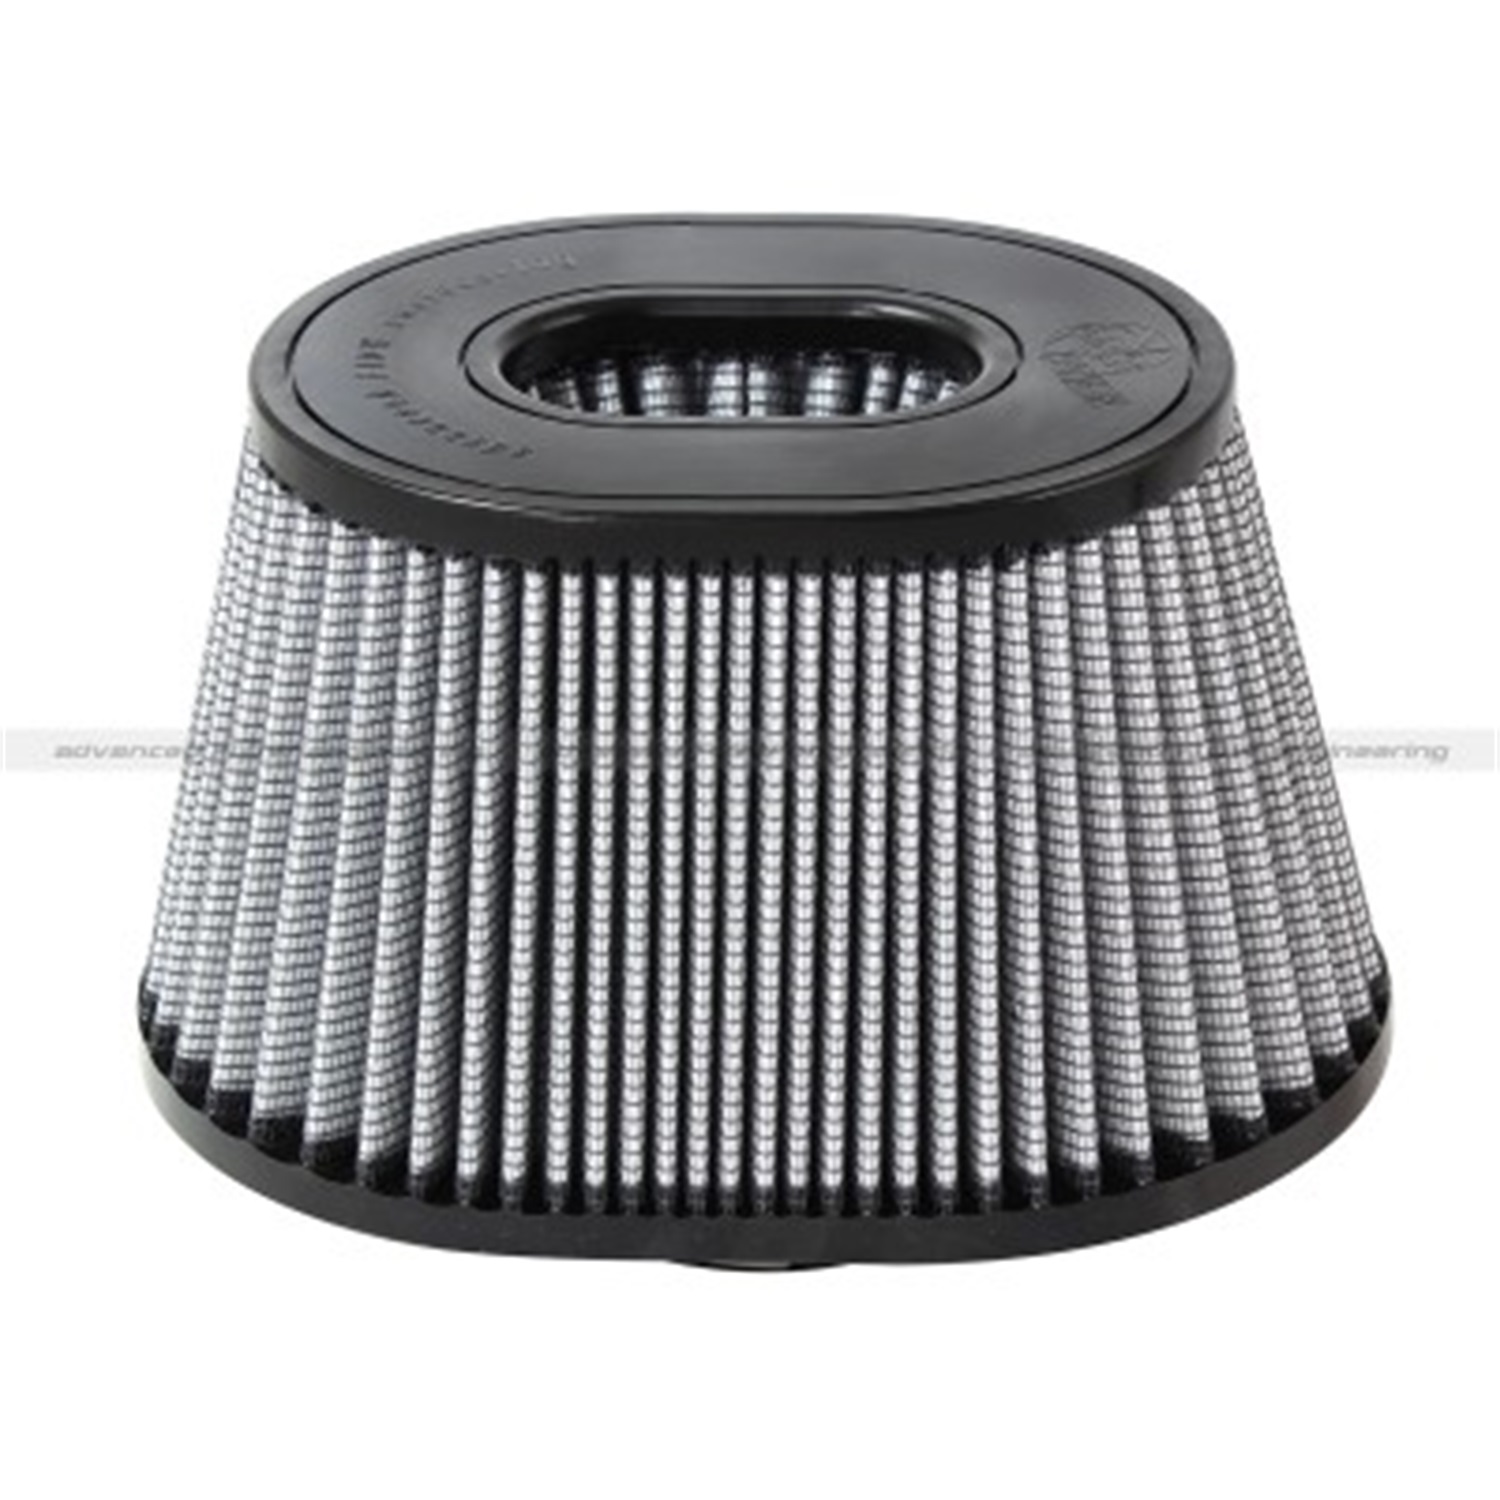 aFe Power 21-91087 MagnumFLOW Universal Clamp On PRO DRY S Air Filter 21-91087